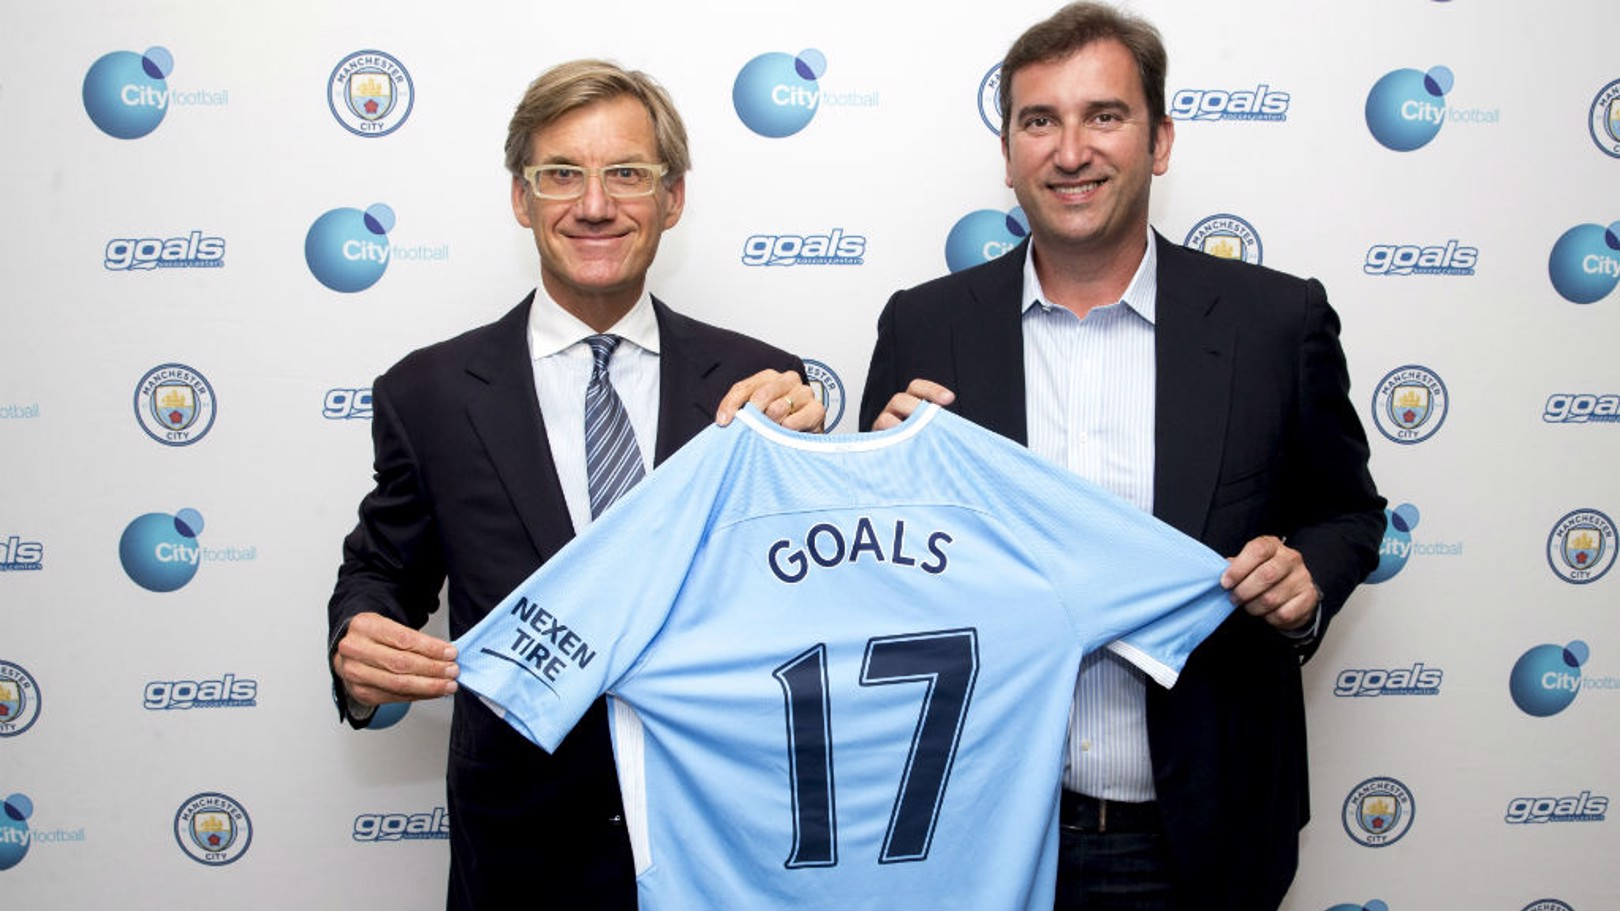 Nick Basing, Chairman of Goals and Ferran Soriano, Chief Executive of City Football Group